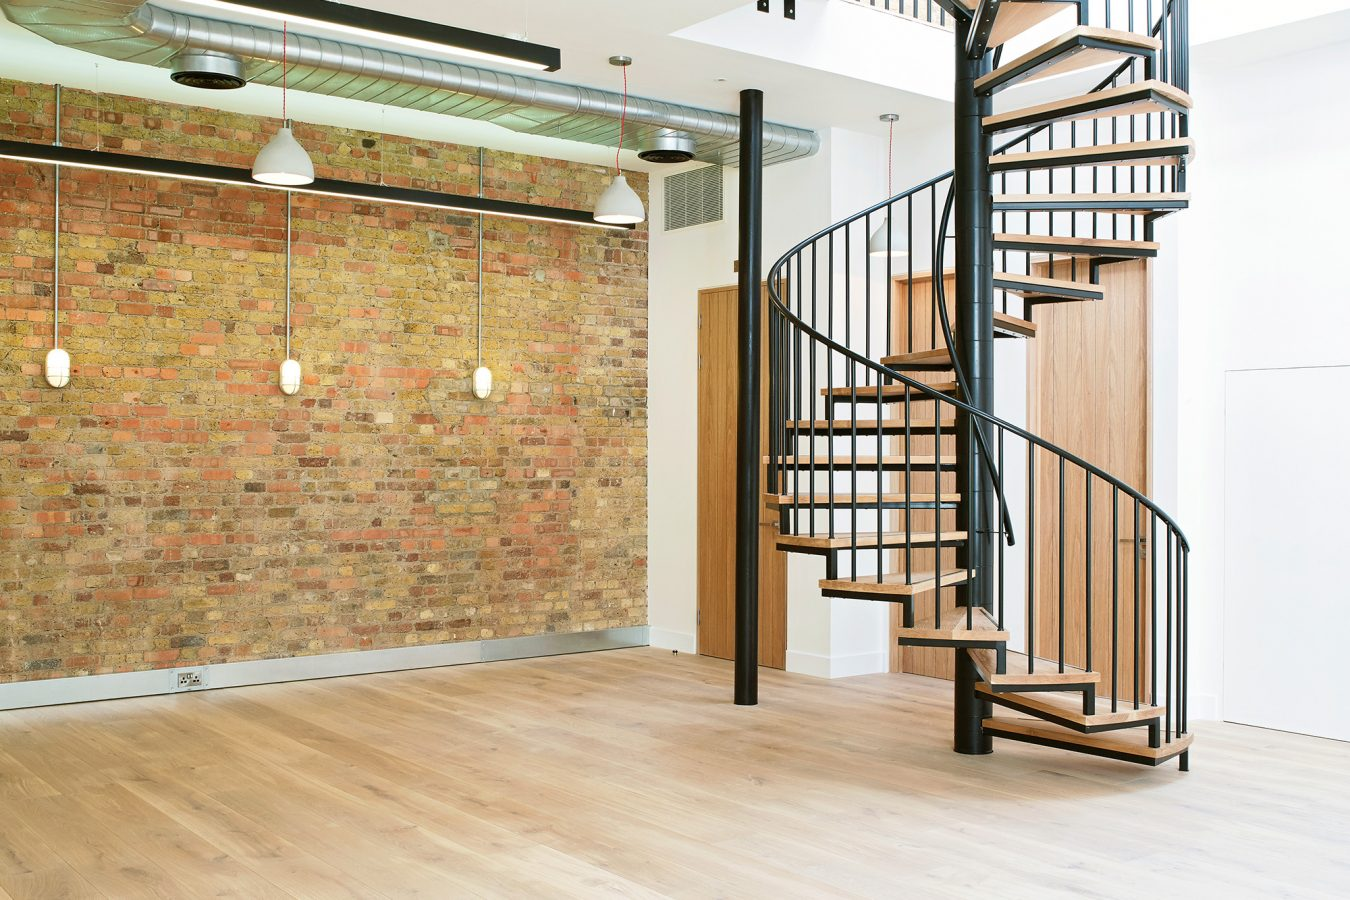 Feature brick wall exposed and cilindric staircase in an office space.